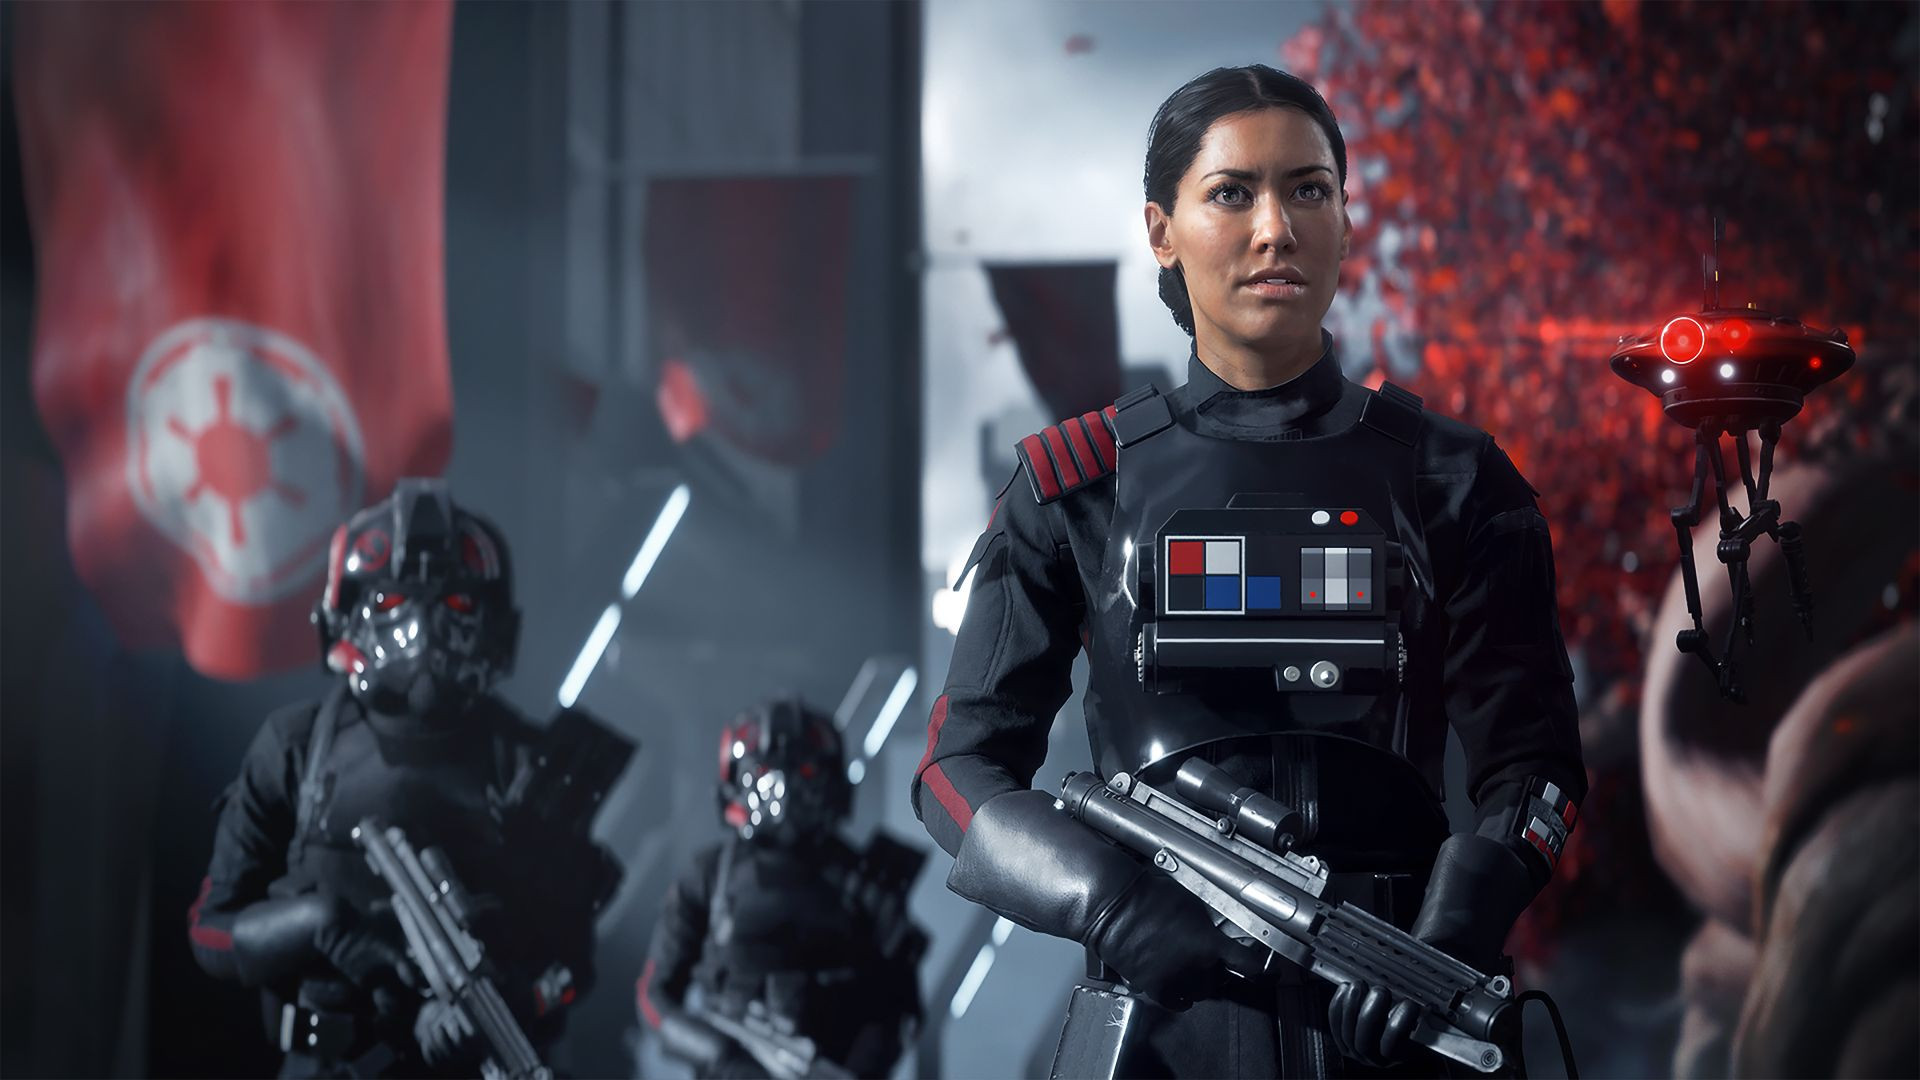 Photo of Star Wars: Battlefront 2 Patch 2.0 released, adds Ansel support for Nvidia GPUs